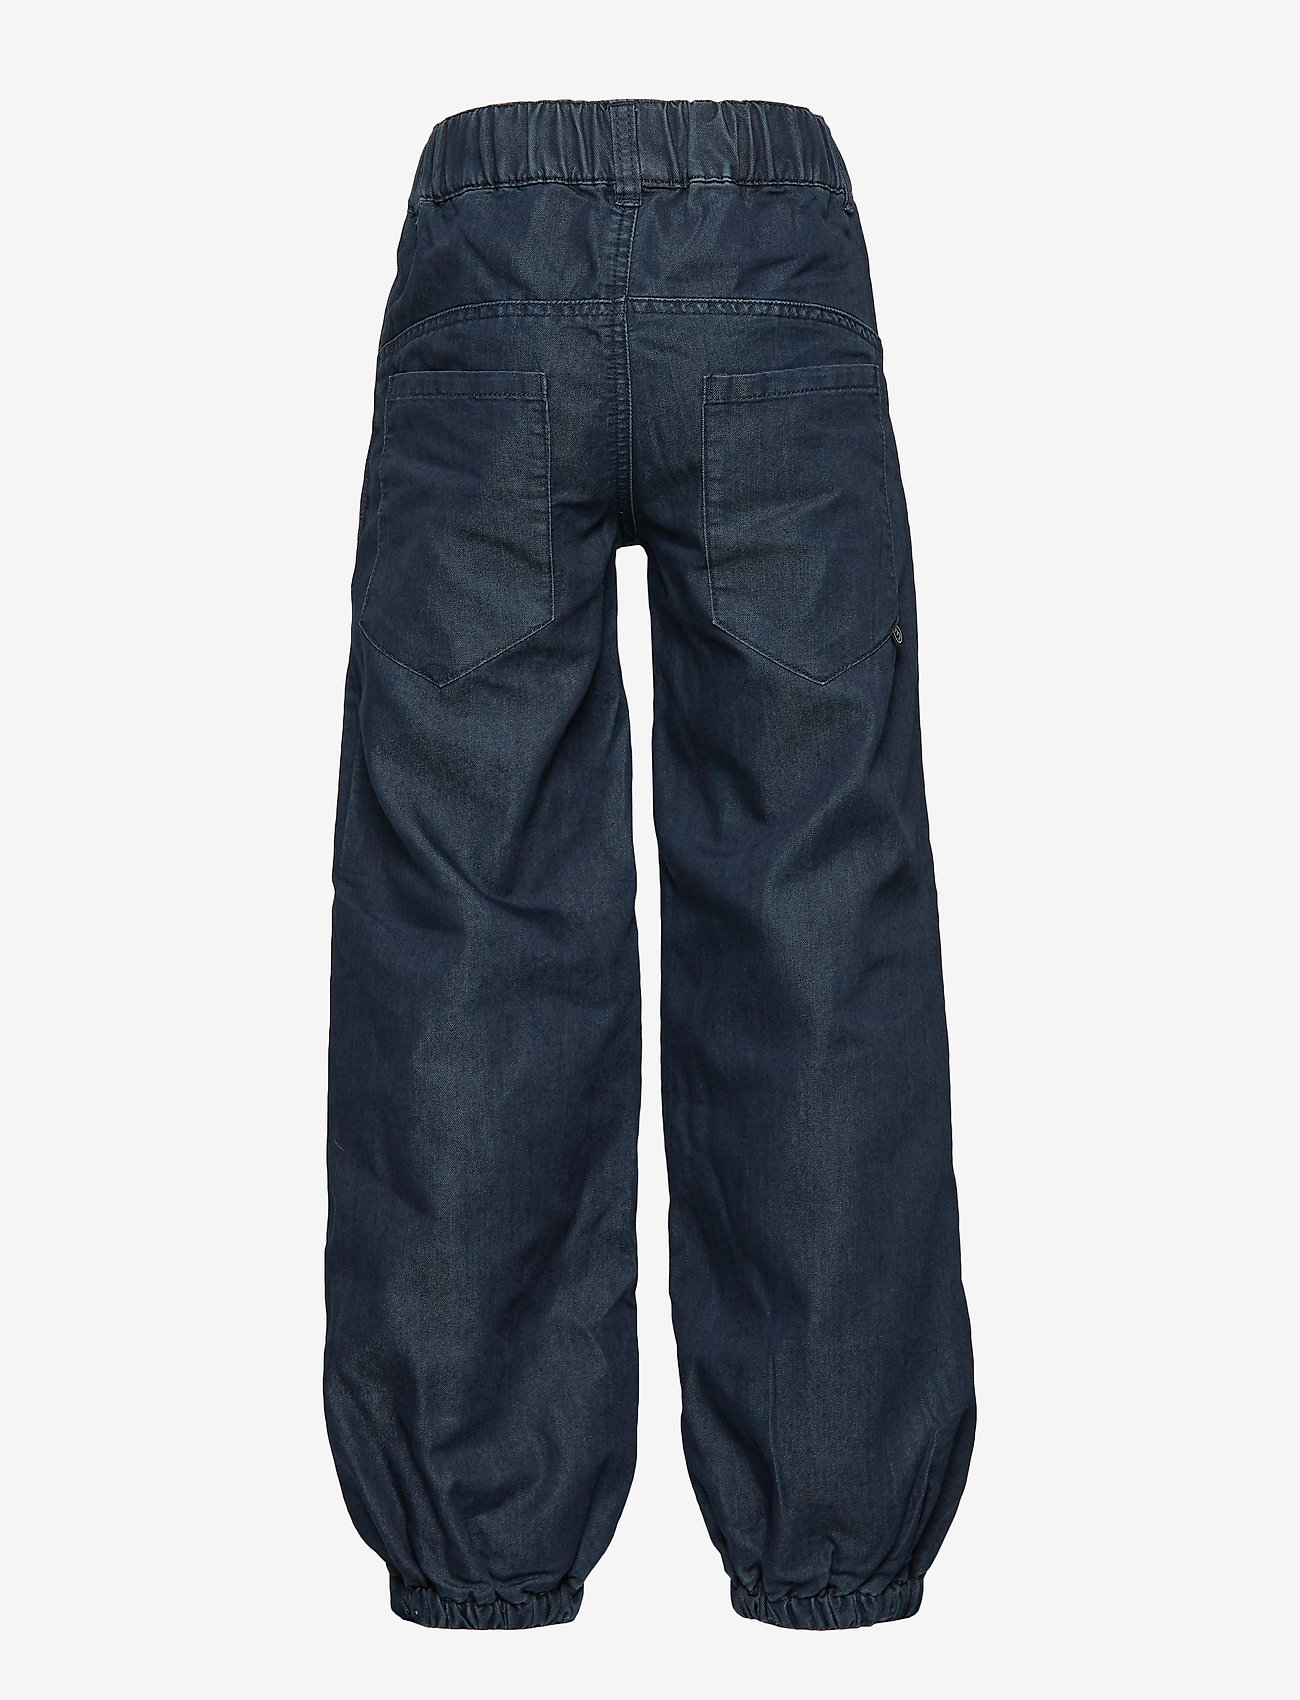 Minymo - Baggy pant -GIRL - broeken - dark blue - 1